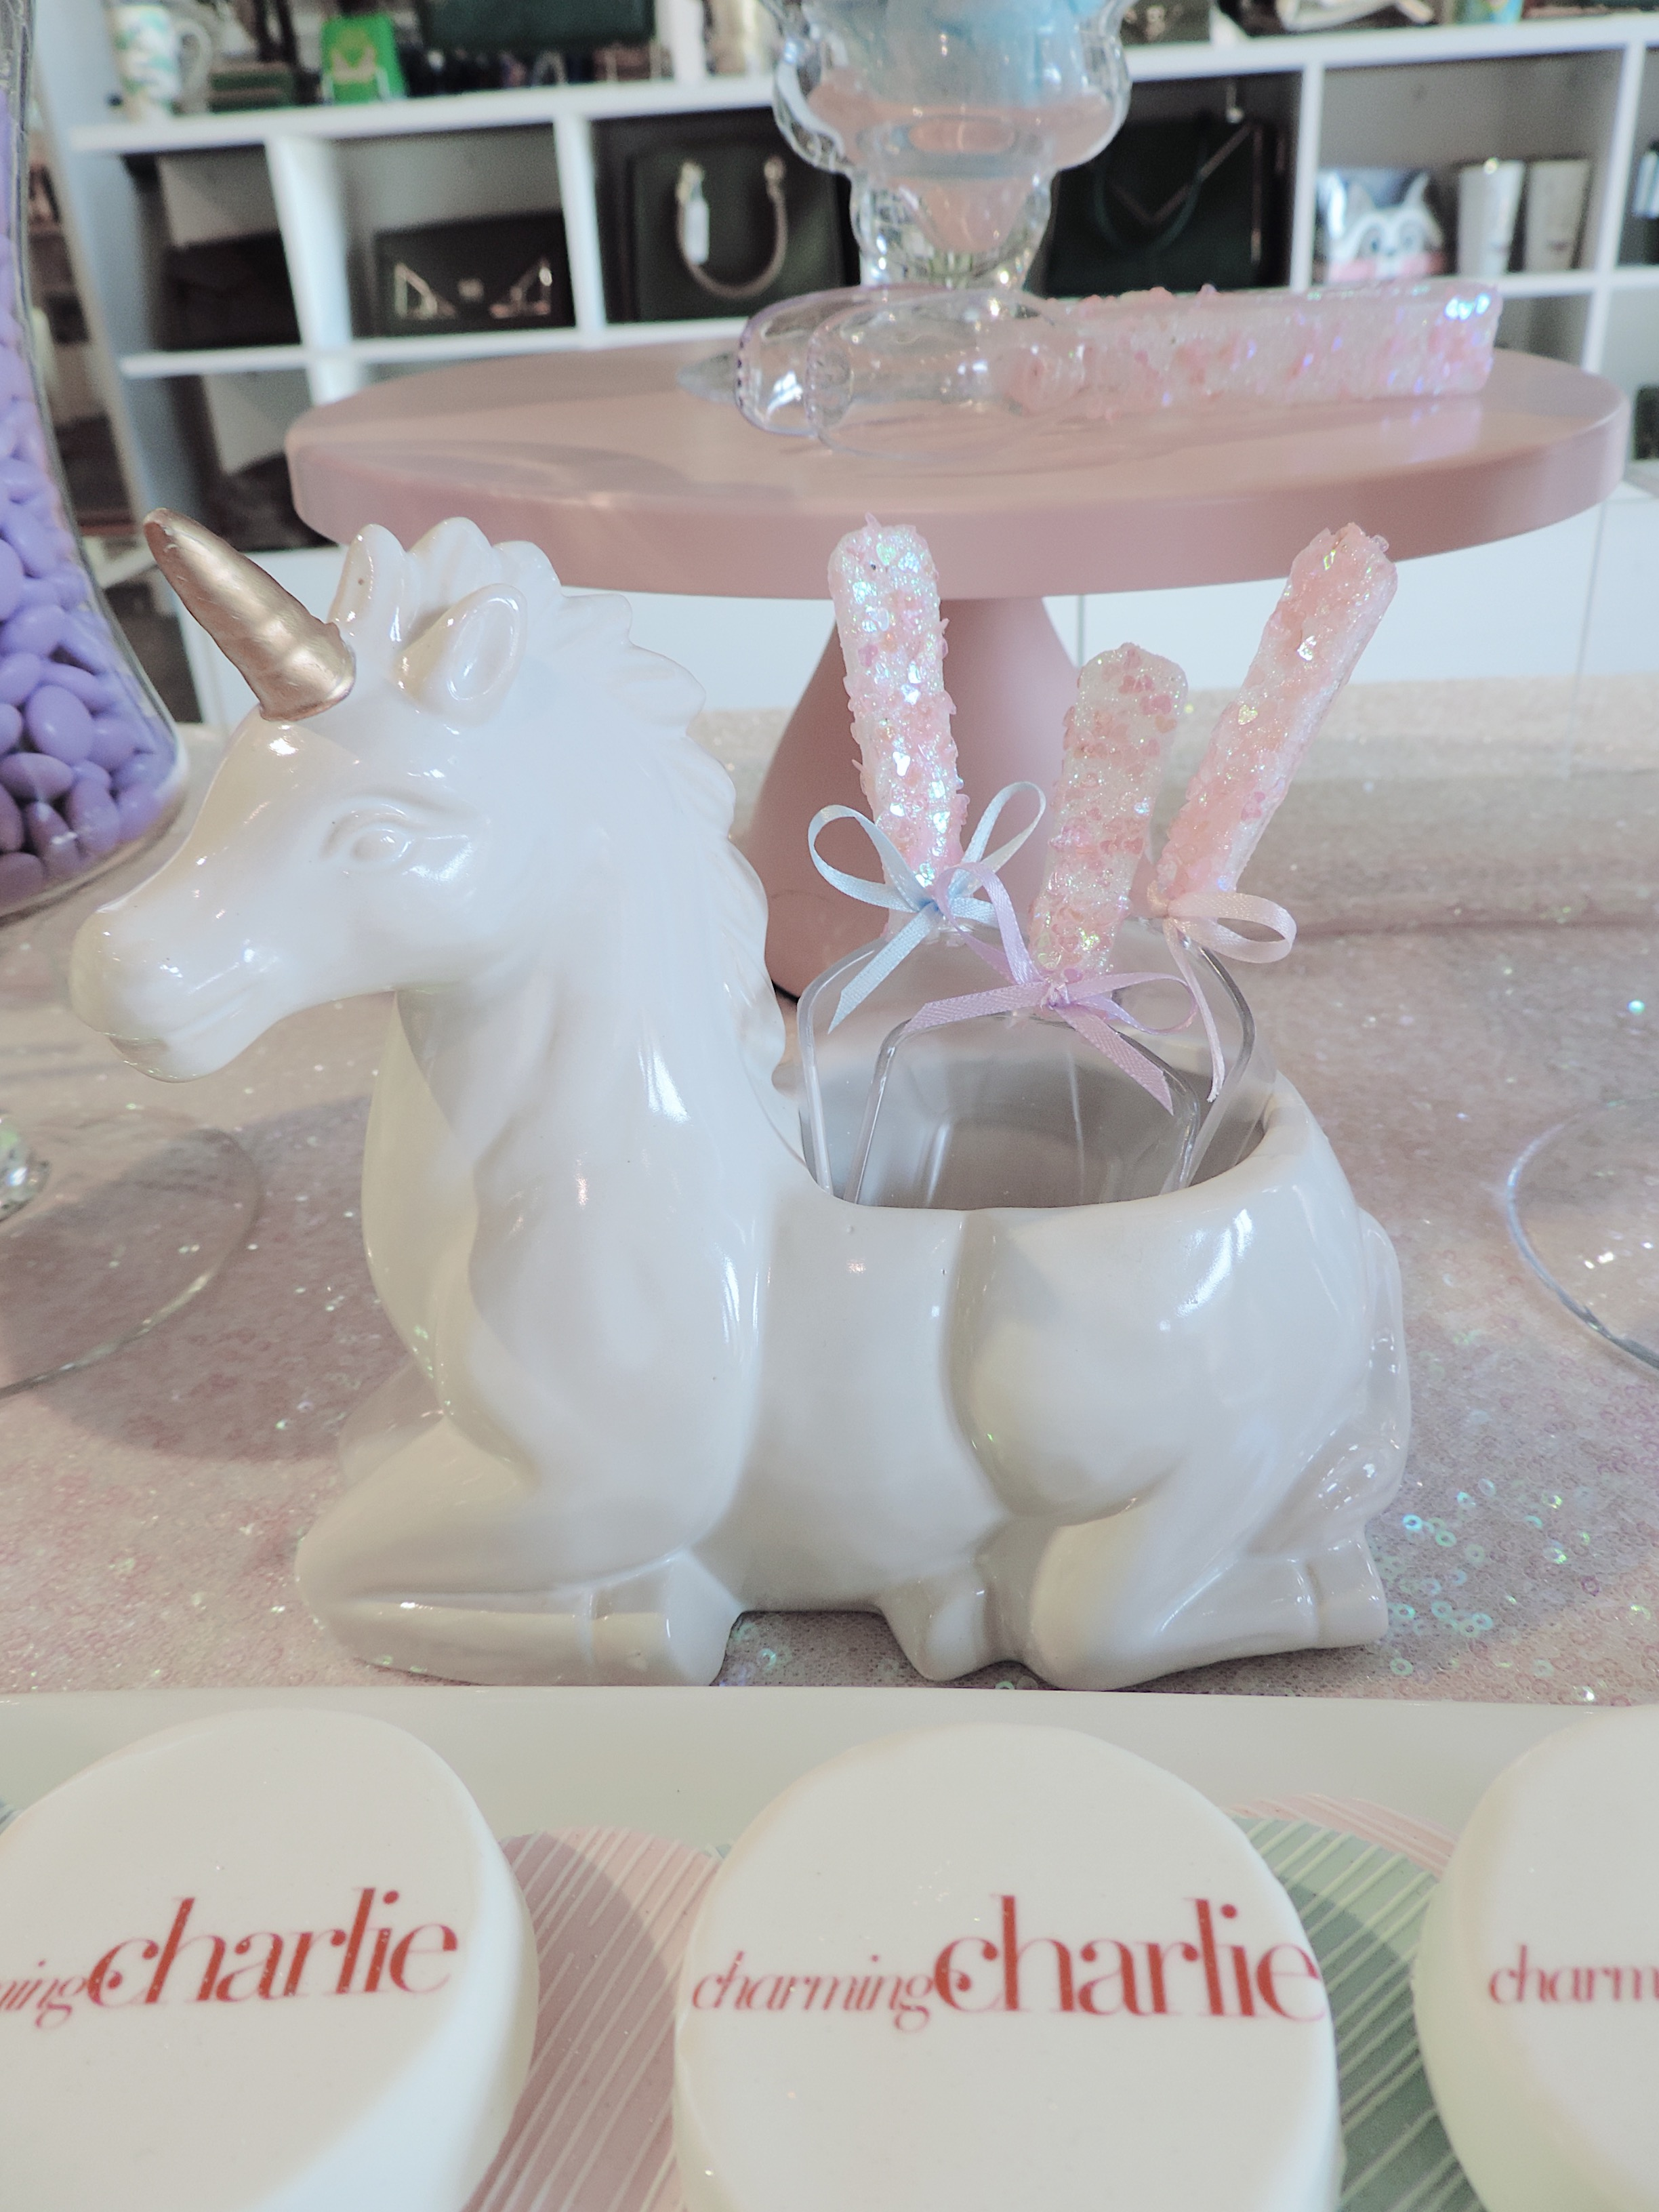 Charming Charlie-Loey Lane-SugarPartiesLA-Dessert Table-unicorn-candy holders.JPG